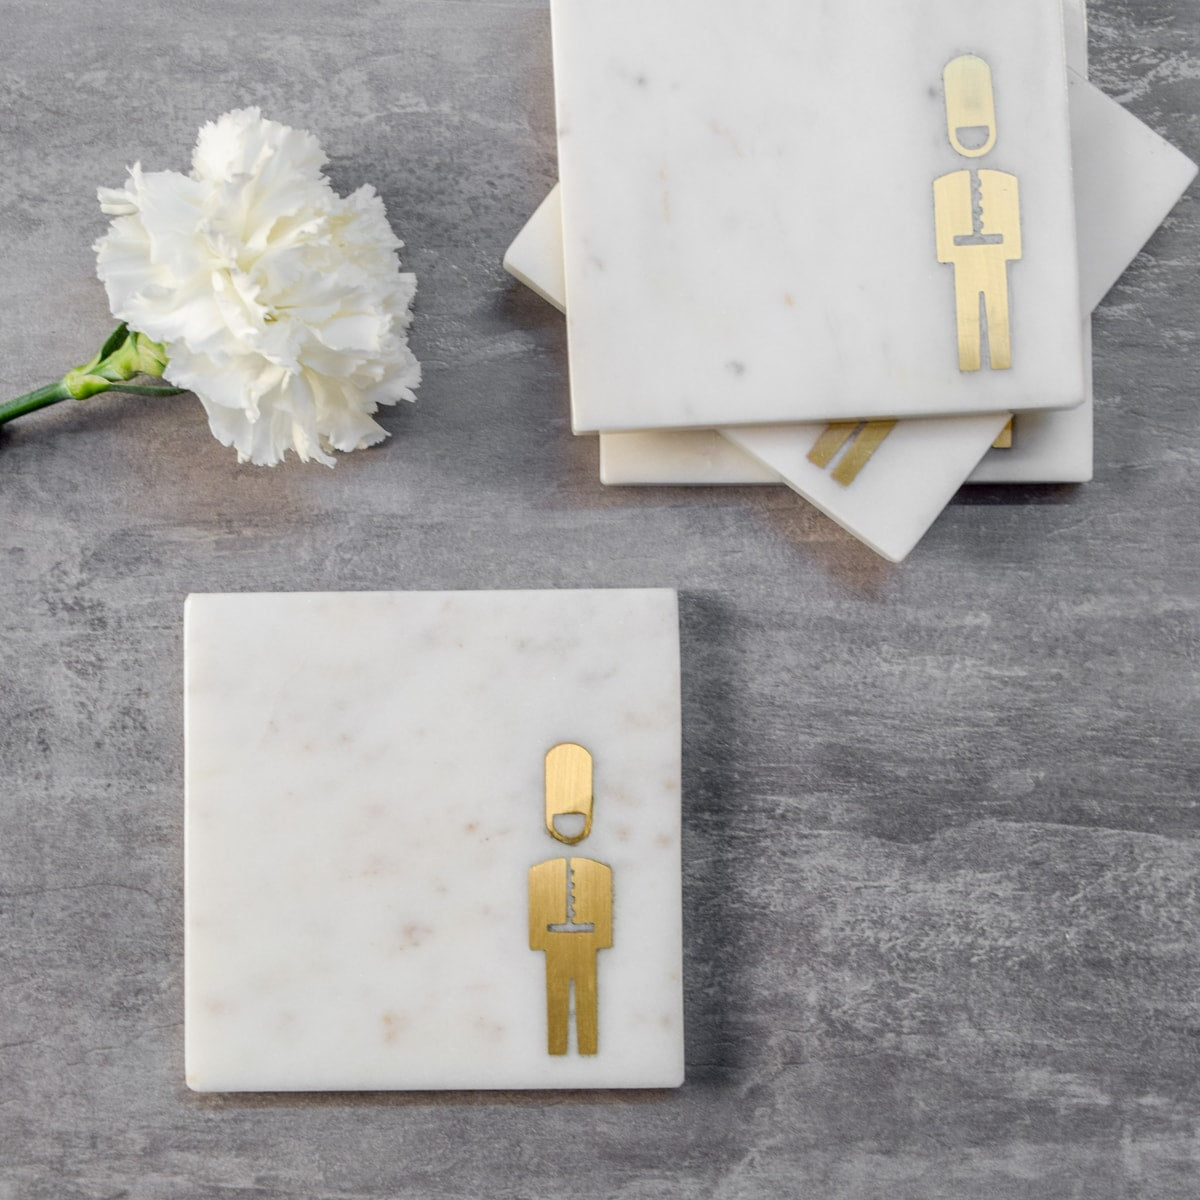 Marble and Brass Buckingham Guard Coasters - Set of 4